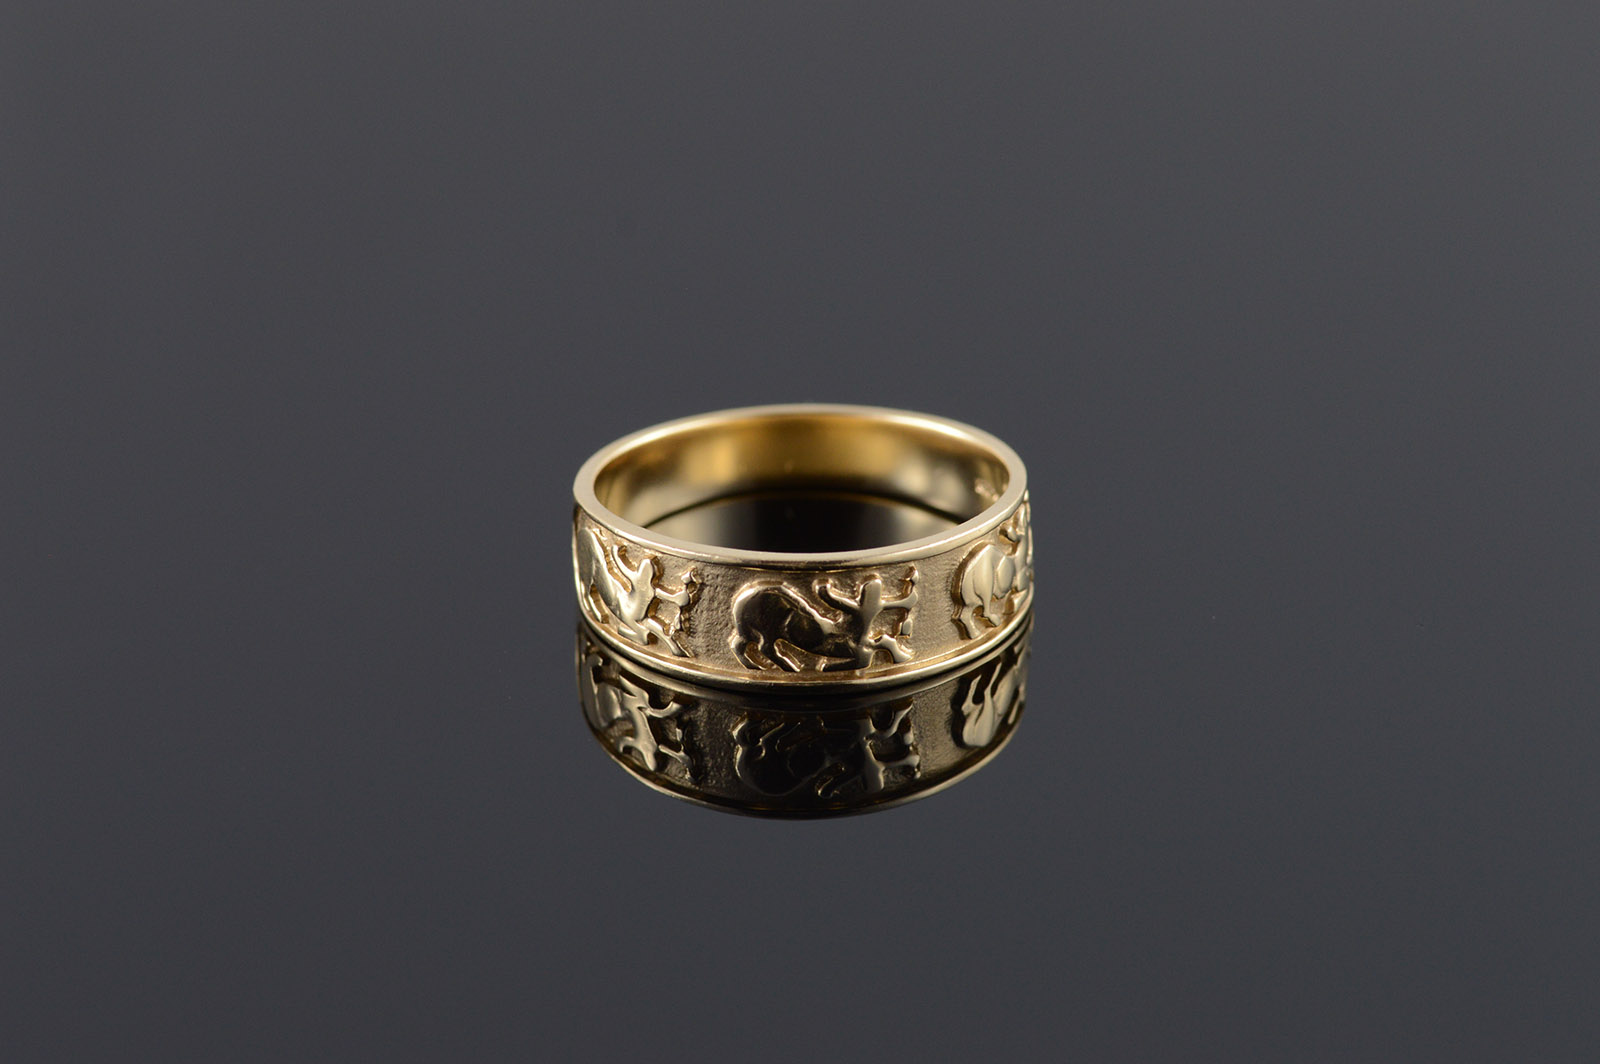 Image 1 Of 4: Gold And Silver Embossed Wedding Bands At Reisefeber.org